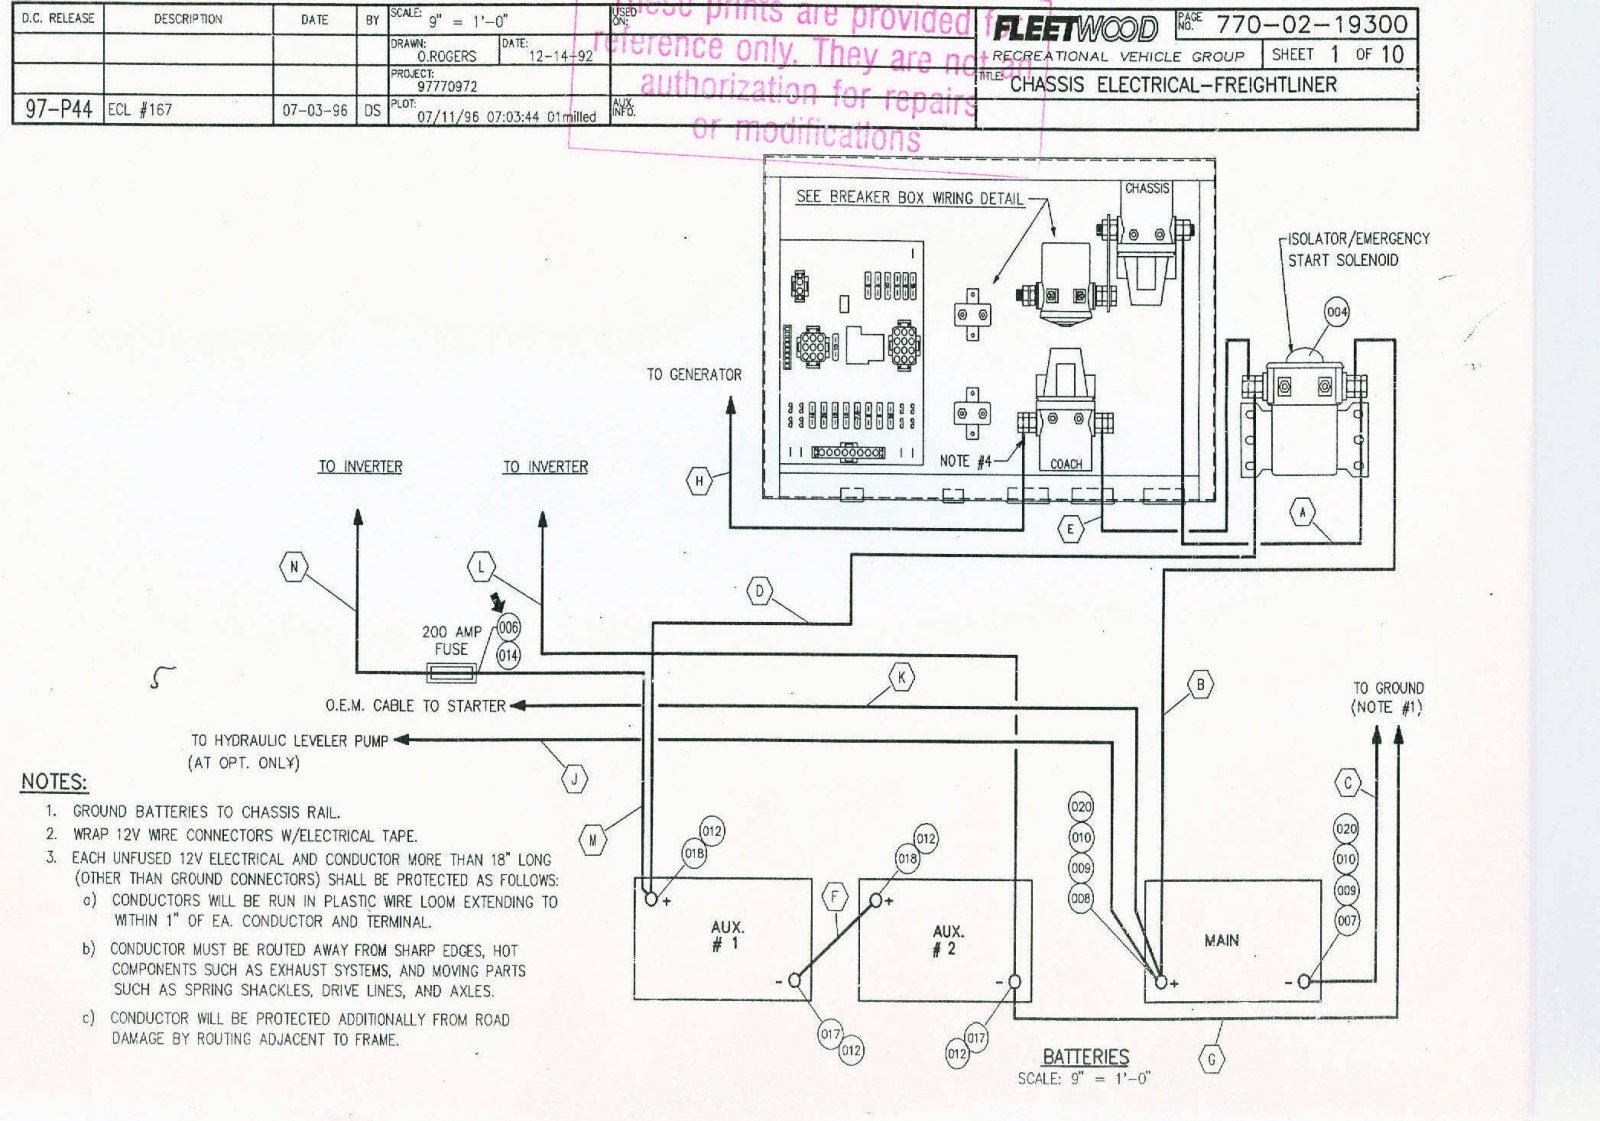 1994 fleetwood southwind wiring diagram